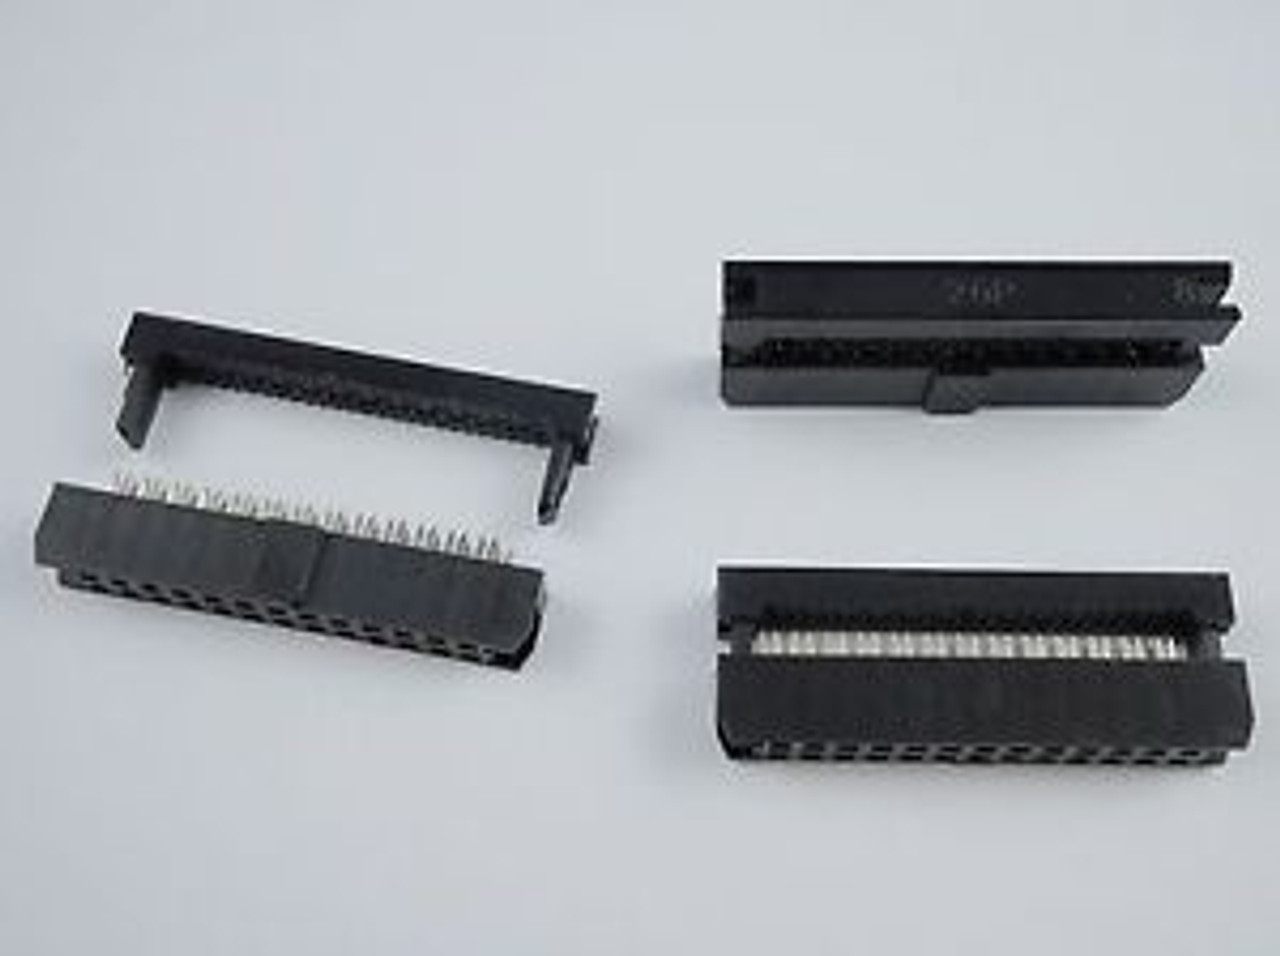 Female to Female 2.54mm-Pitch 26-wire IDC Flat Ribbon Cable 26-Pin 2x13